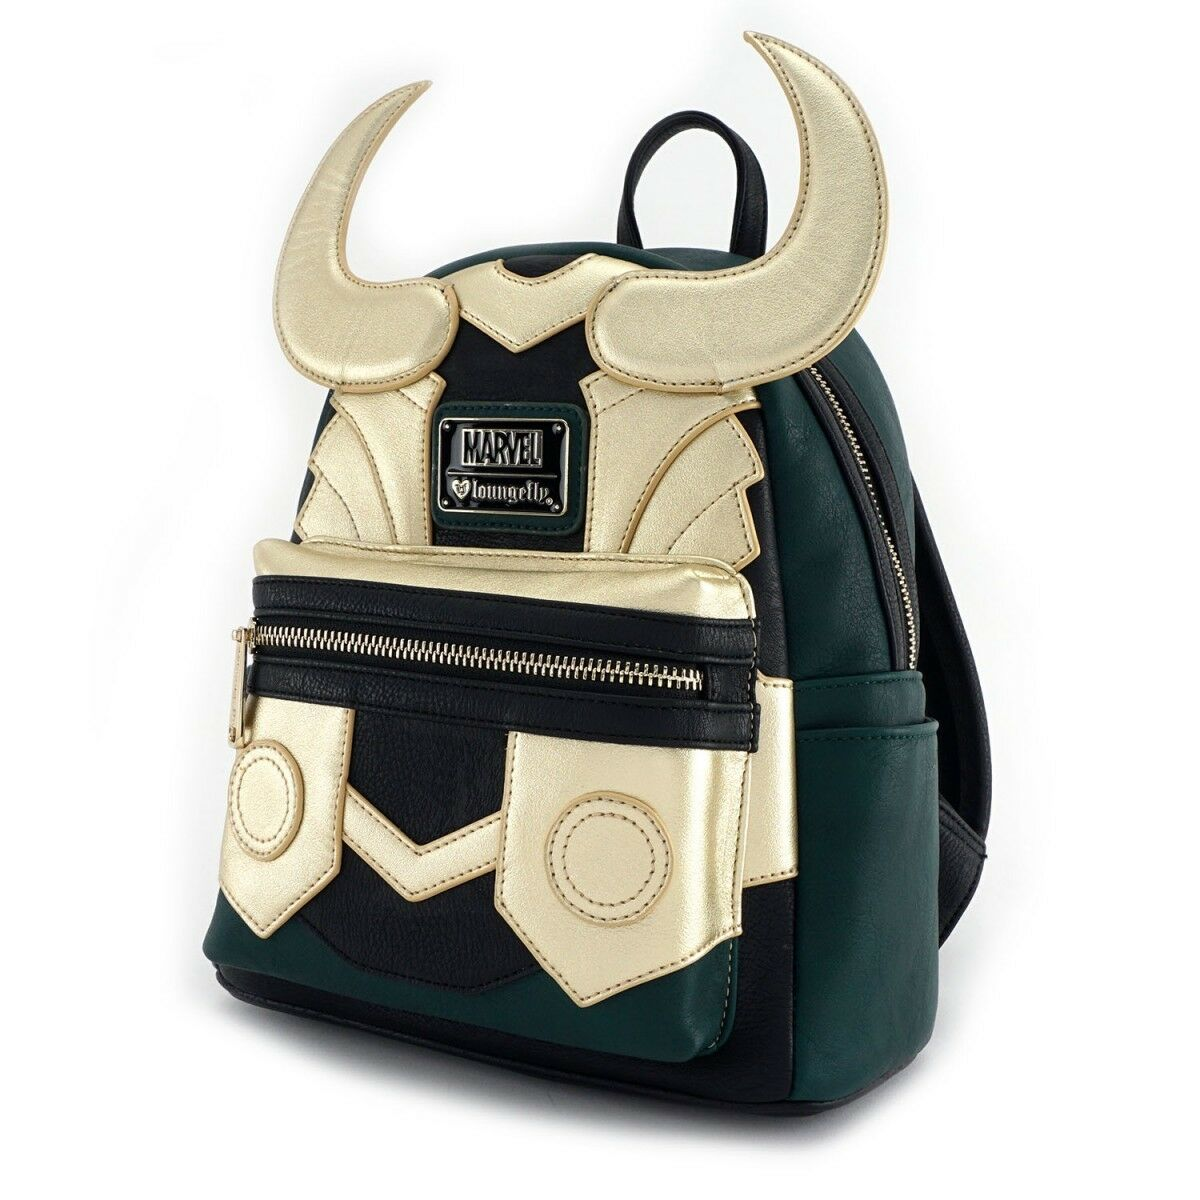 $ New LOUNGEFLY MARVEL School Bag Backpack LOKI AVENGERS COSPLAY Faux Leather